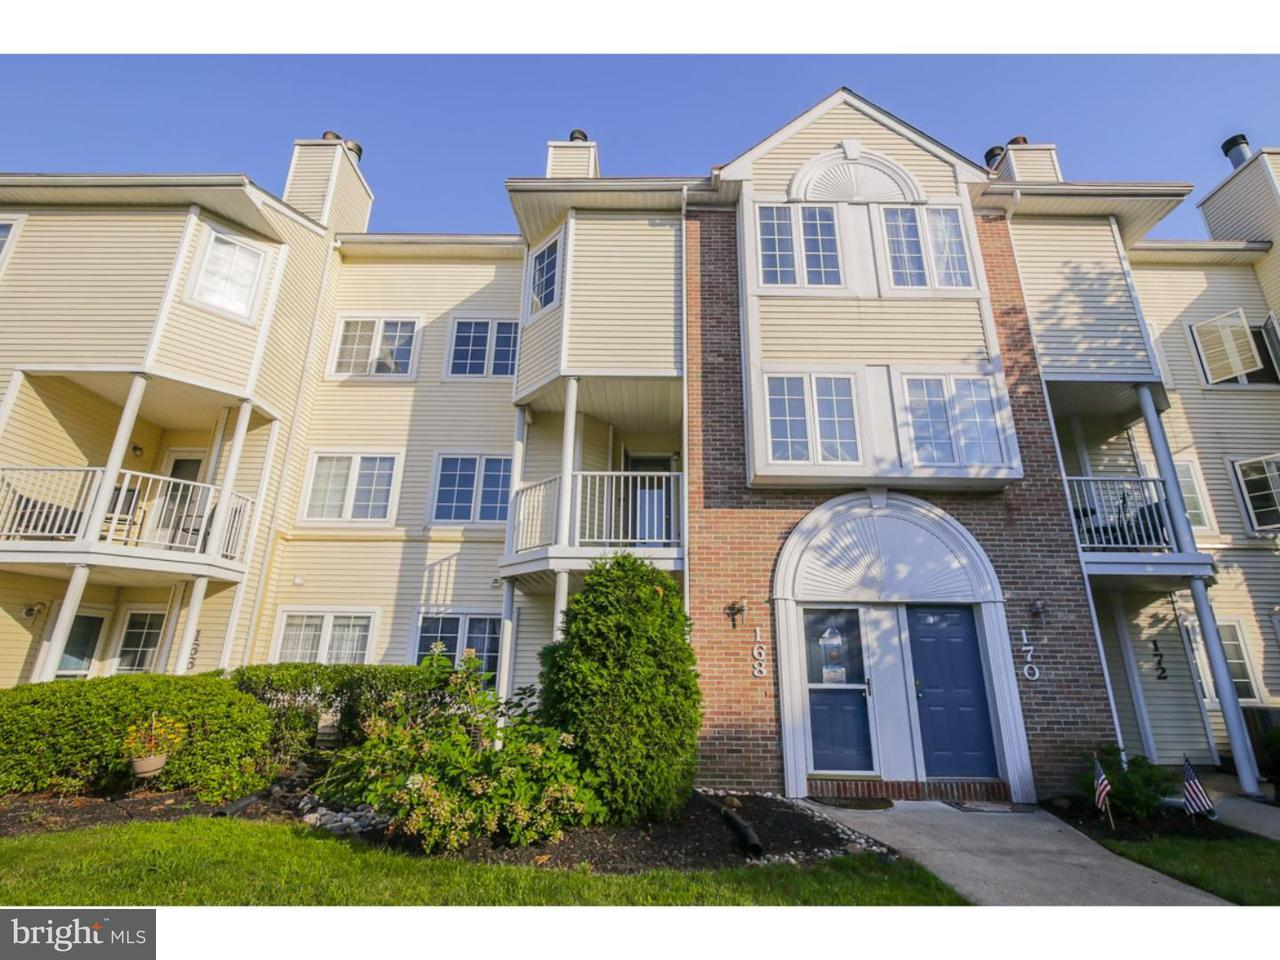 Townhouse for Rent at 180 DEVON WAY Levittown, Pennsylvania 19057 United States